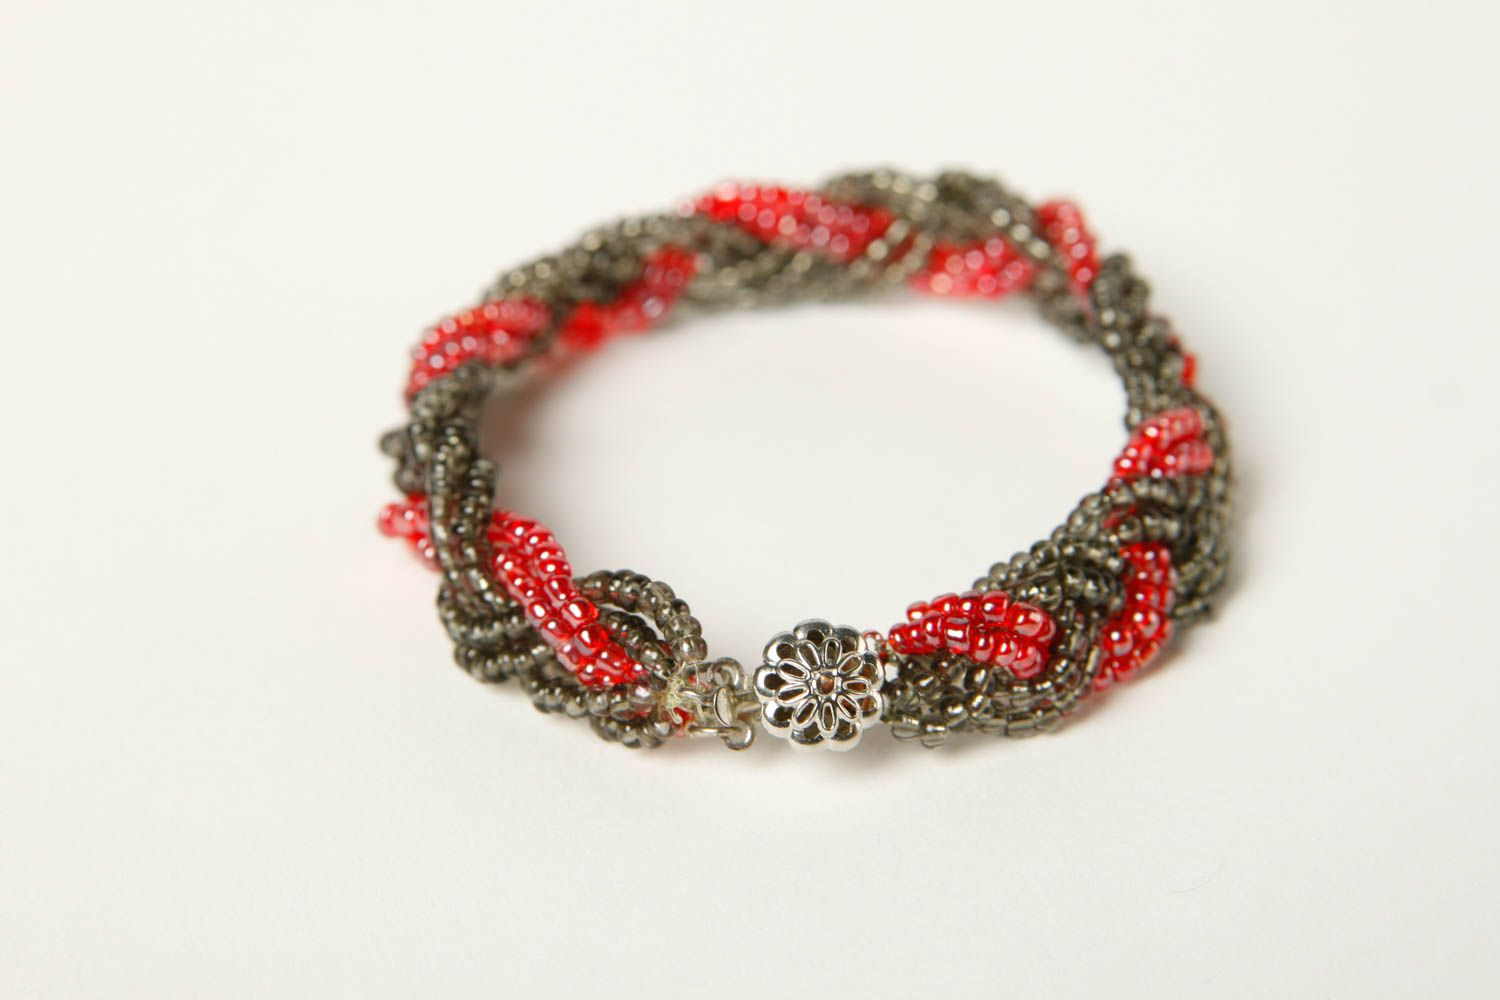 Woven Bracelet Exclusive Bijouterie Seed Bead Jewelry Fashion For